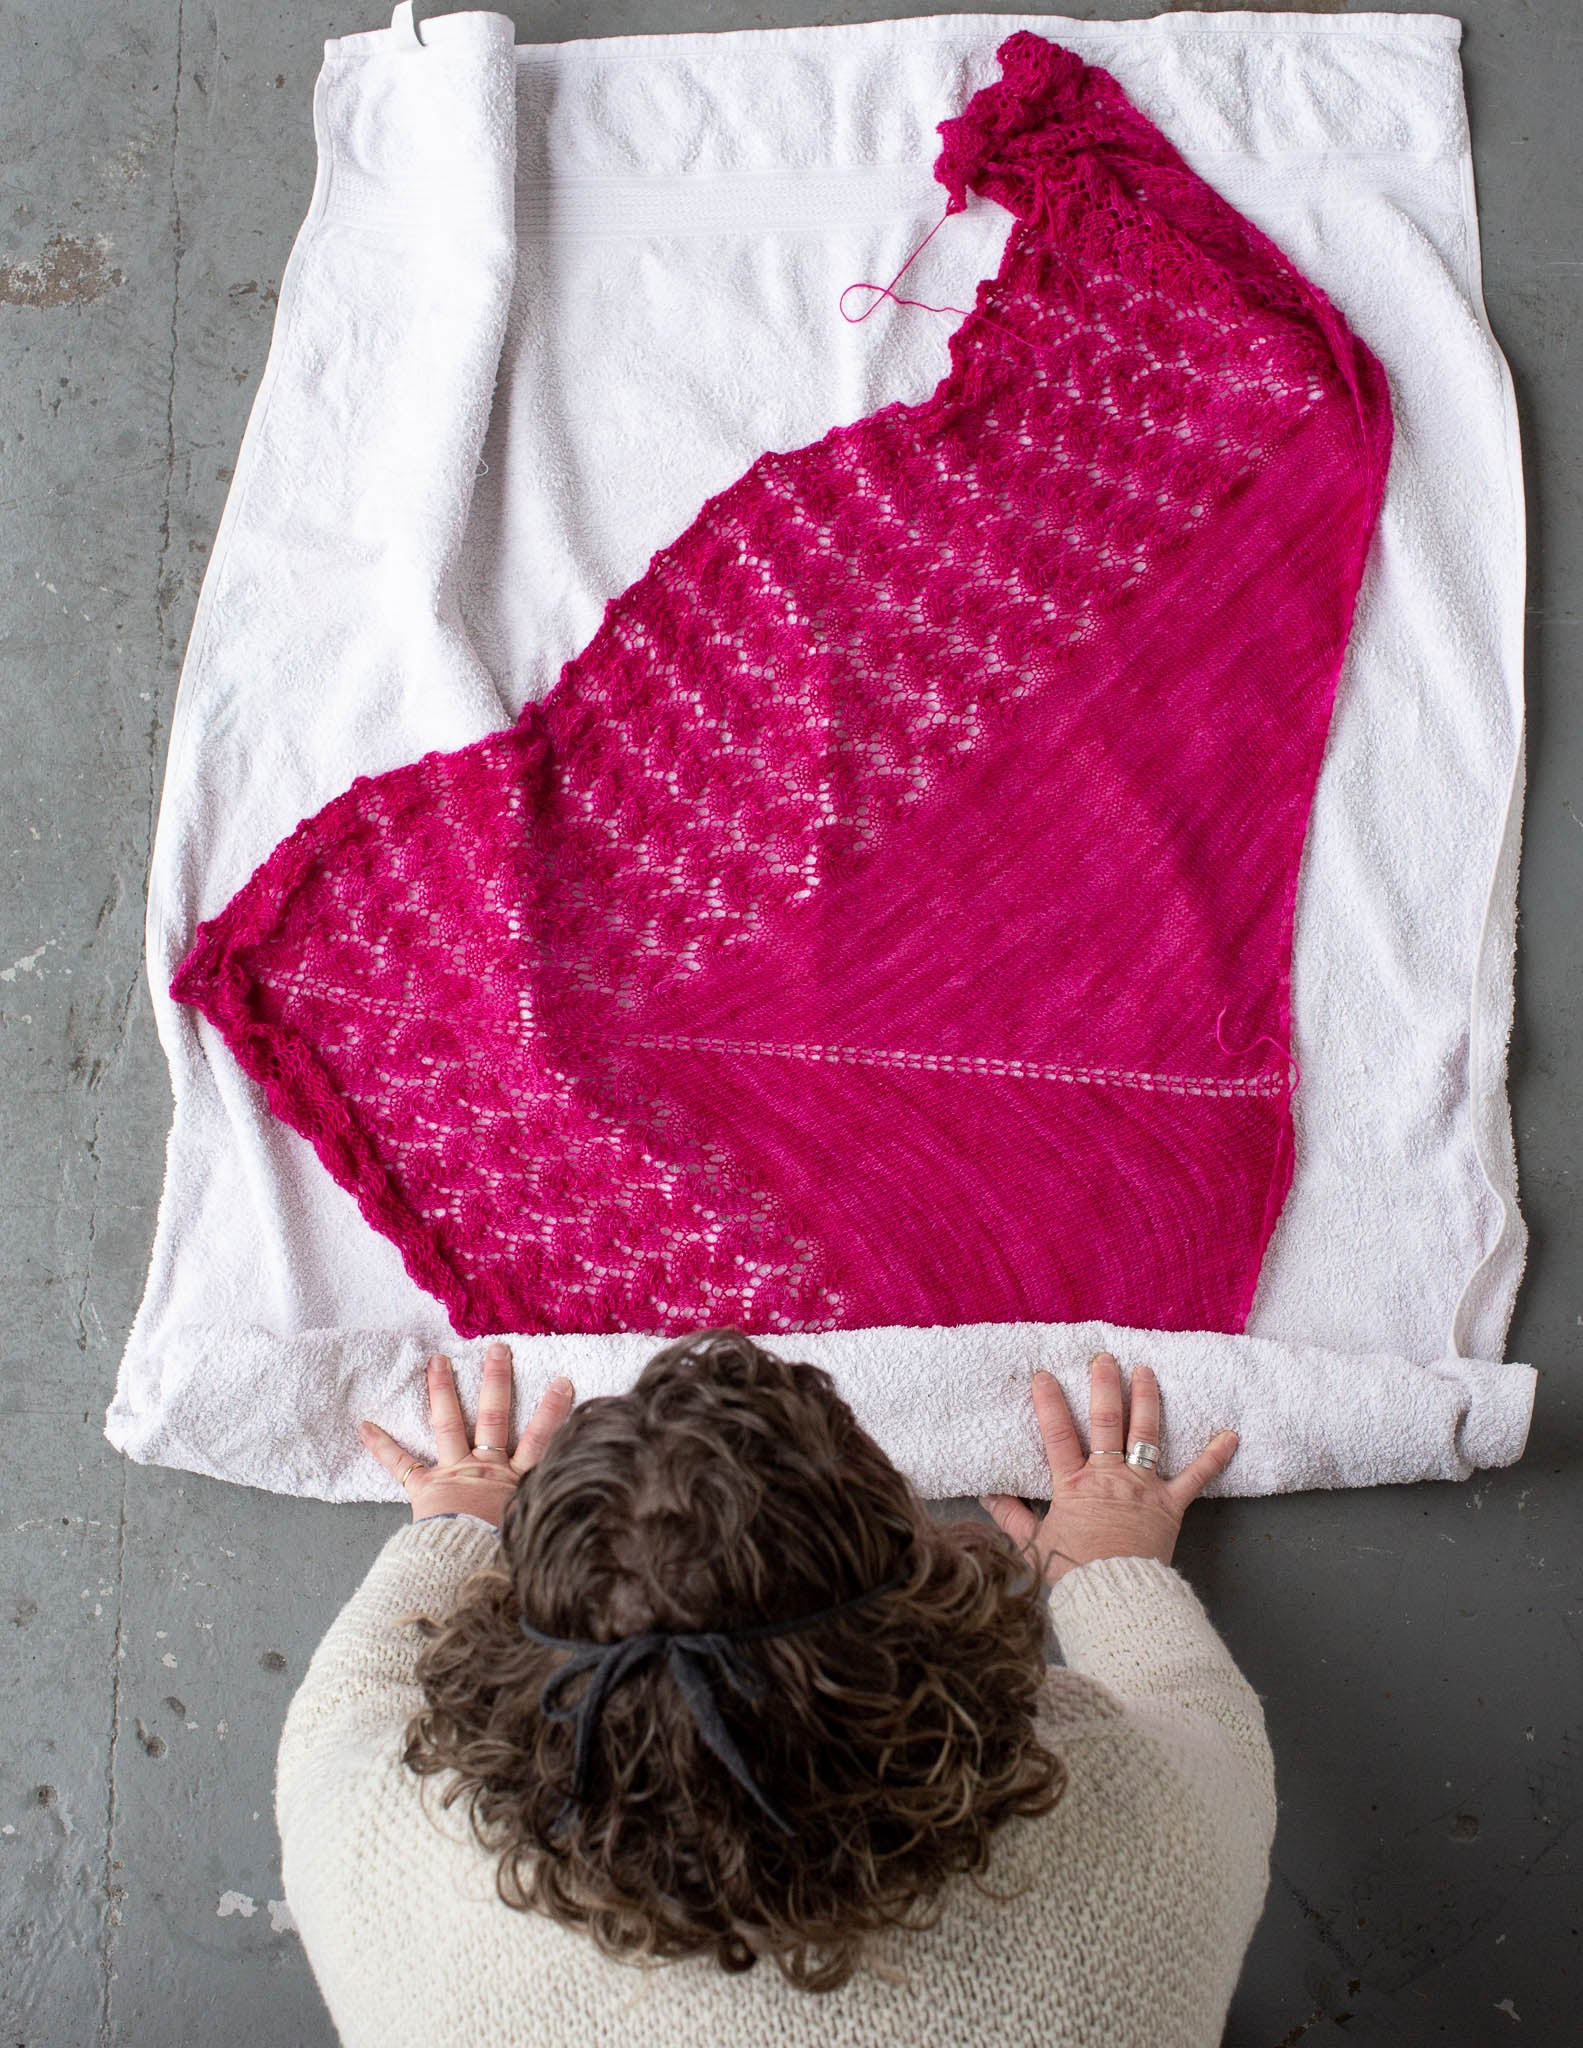 A pink shawl has been laid out on a white towel, on a grey floor. The towel is being rolled up from the bottom with the shawl enclosed inside by a white woman at the bottom of the picture. She has dark curly hair and wears a white sweater.